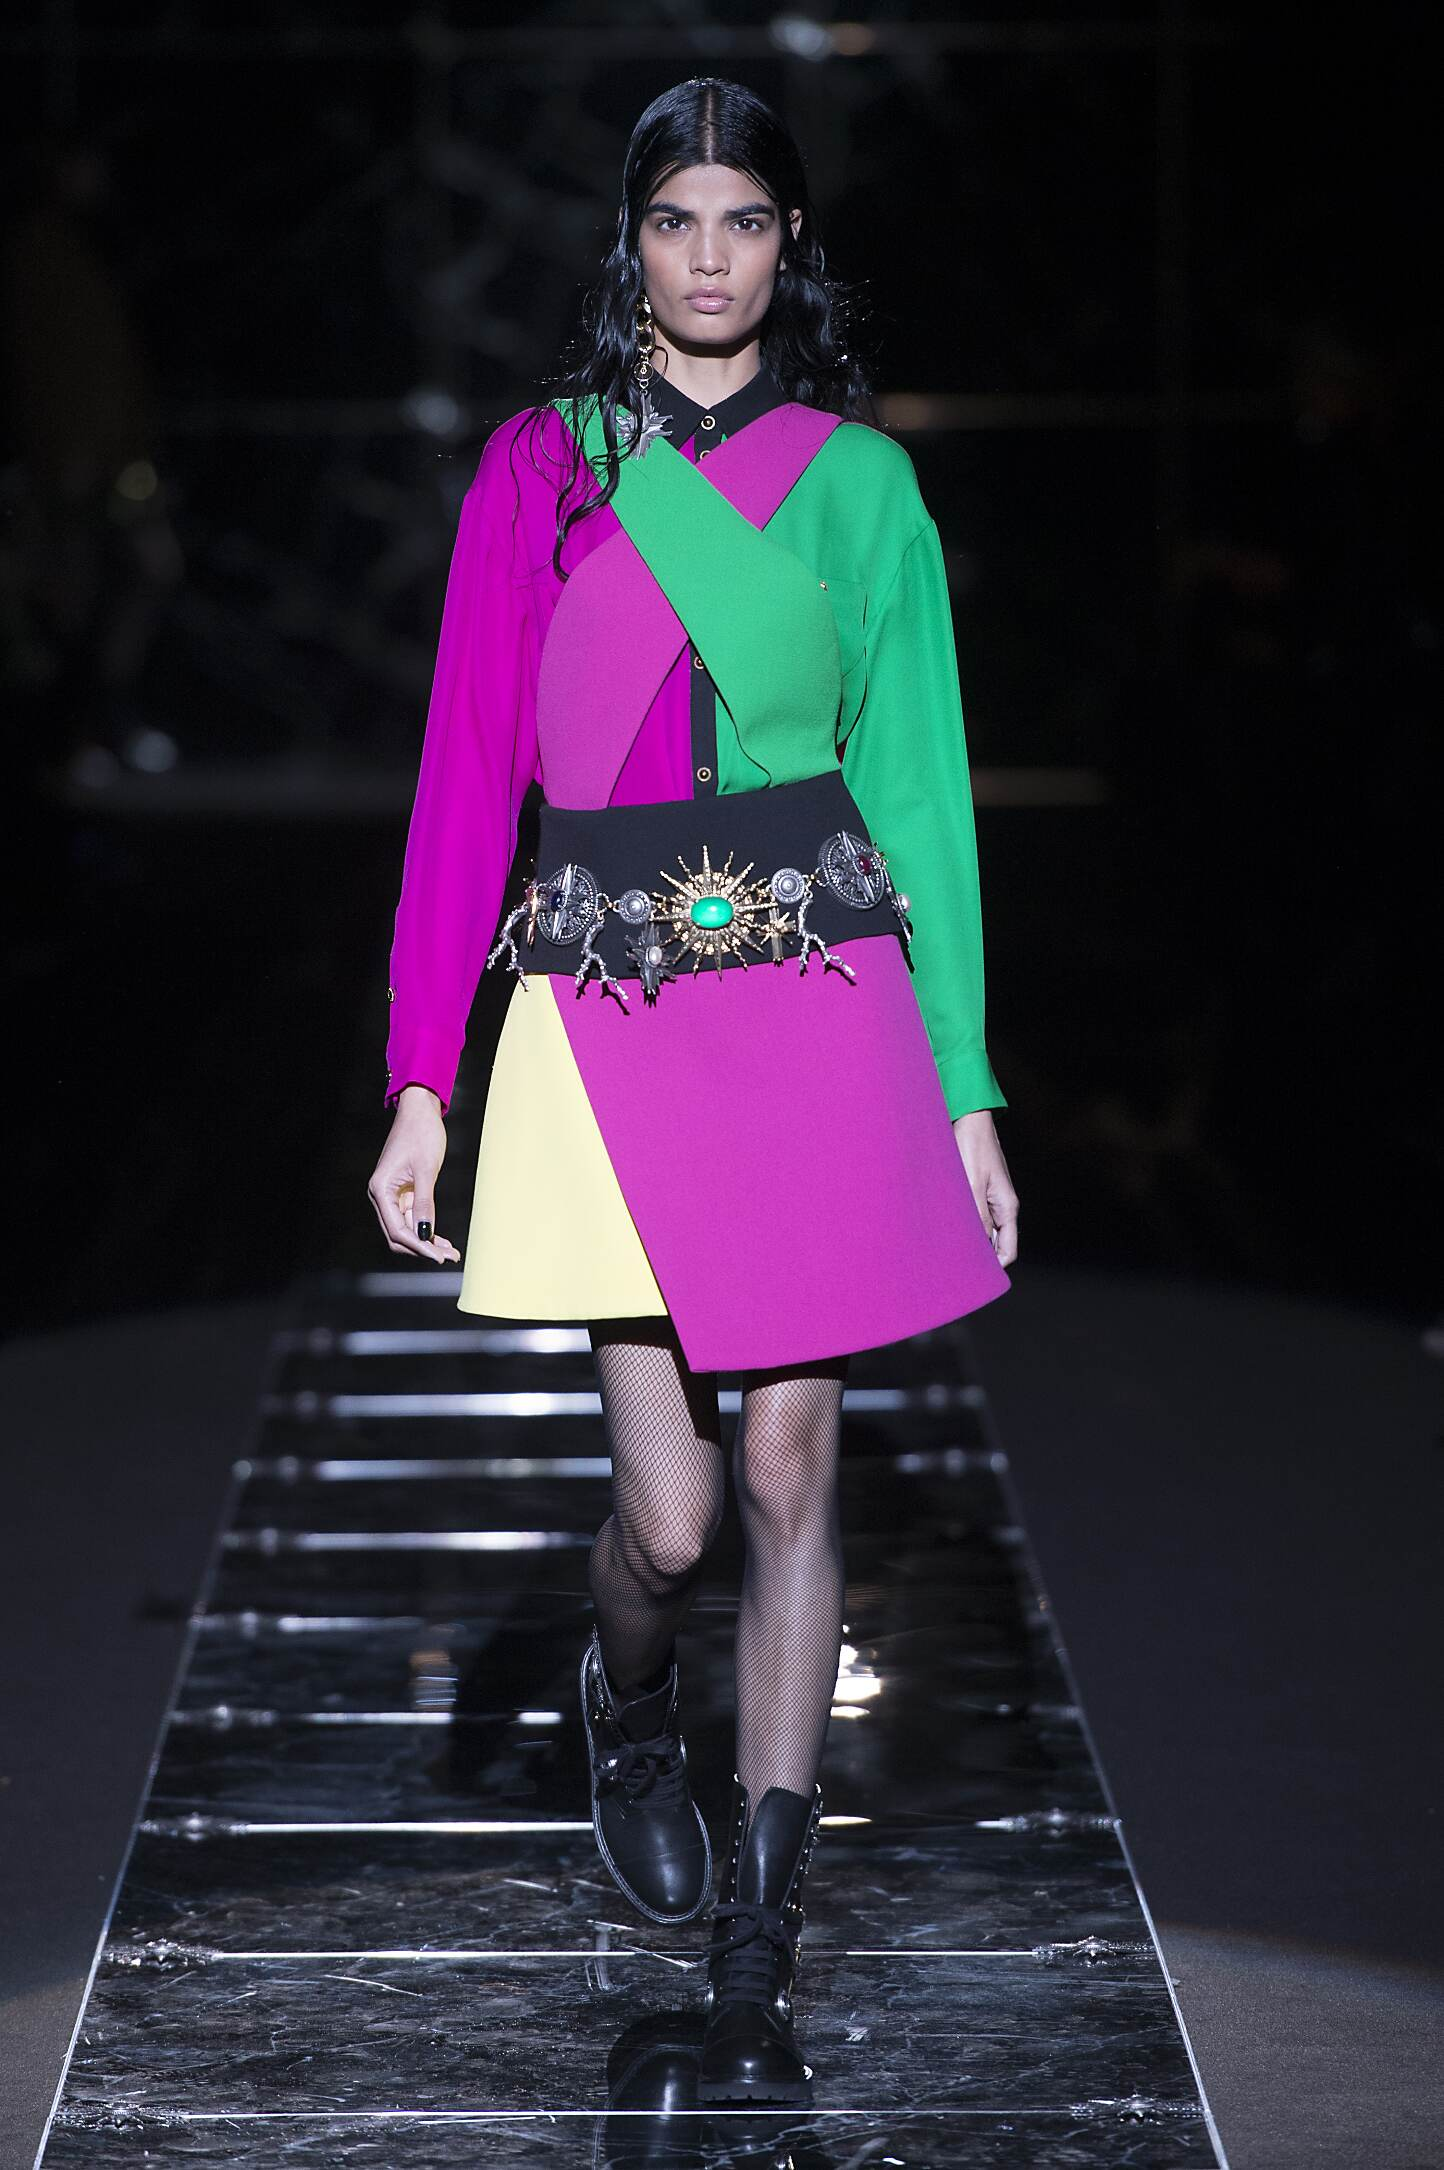 Fausto Puglisi Collection Woman Milan Fashion Week